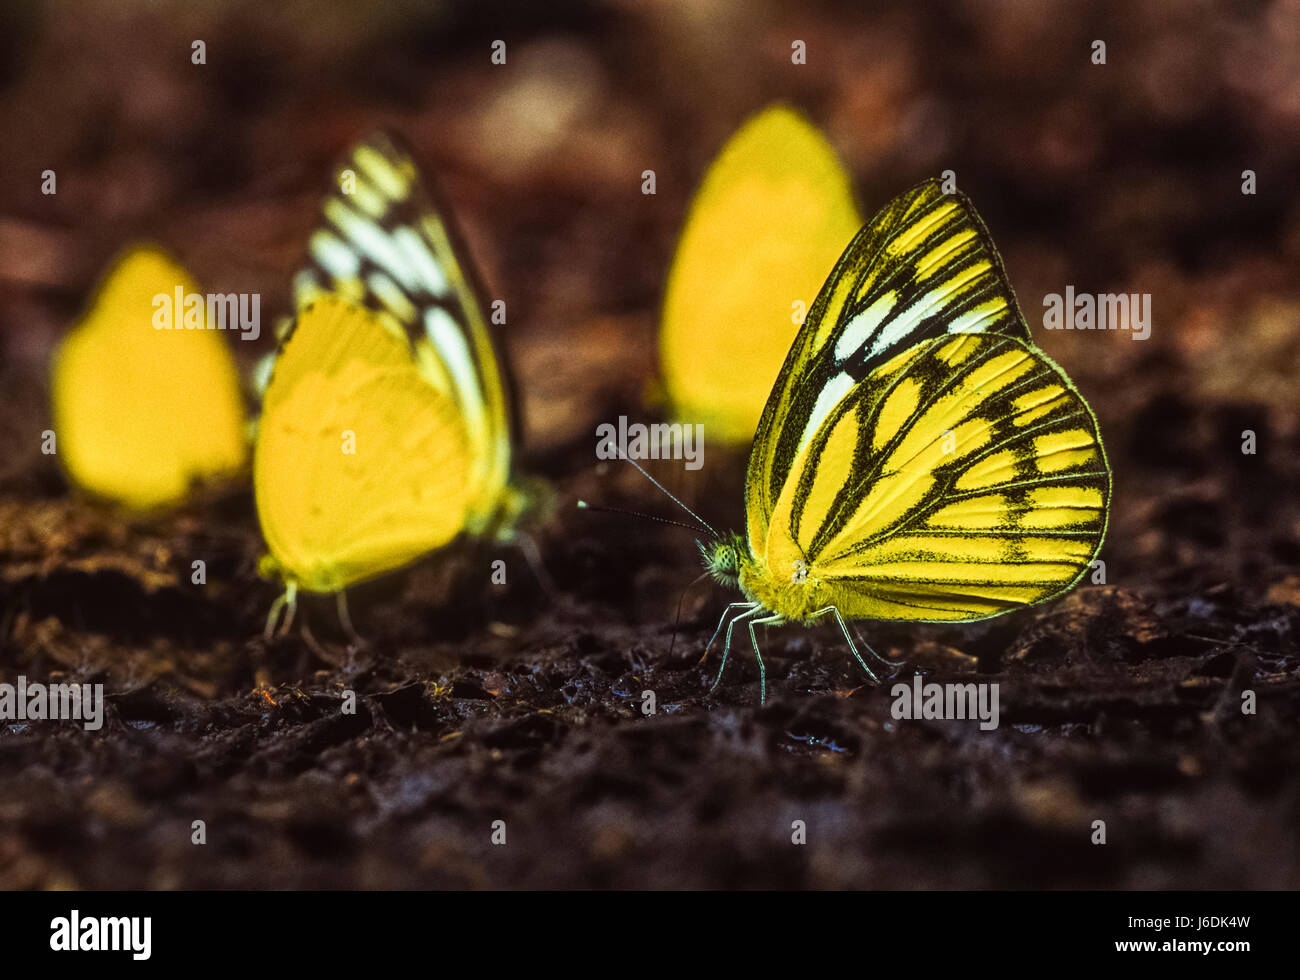 Indian Pioneer and Common Grass Yellow Butterflies, Belenois aurota aurota and Eurema hecabe hecabe, Keoladeo Ghana - Stock Image